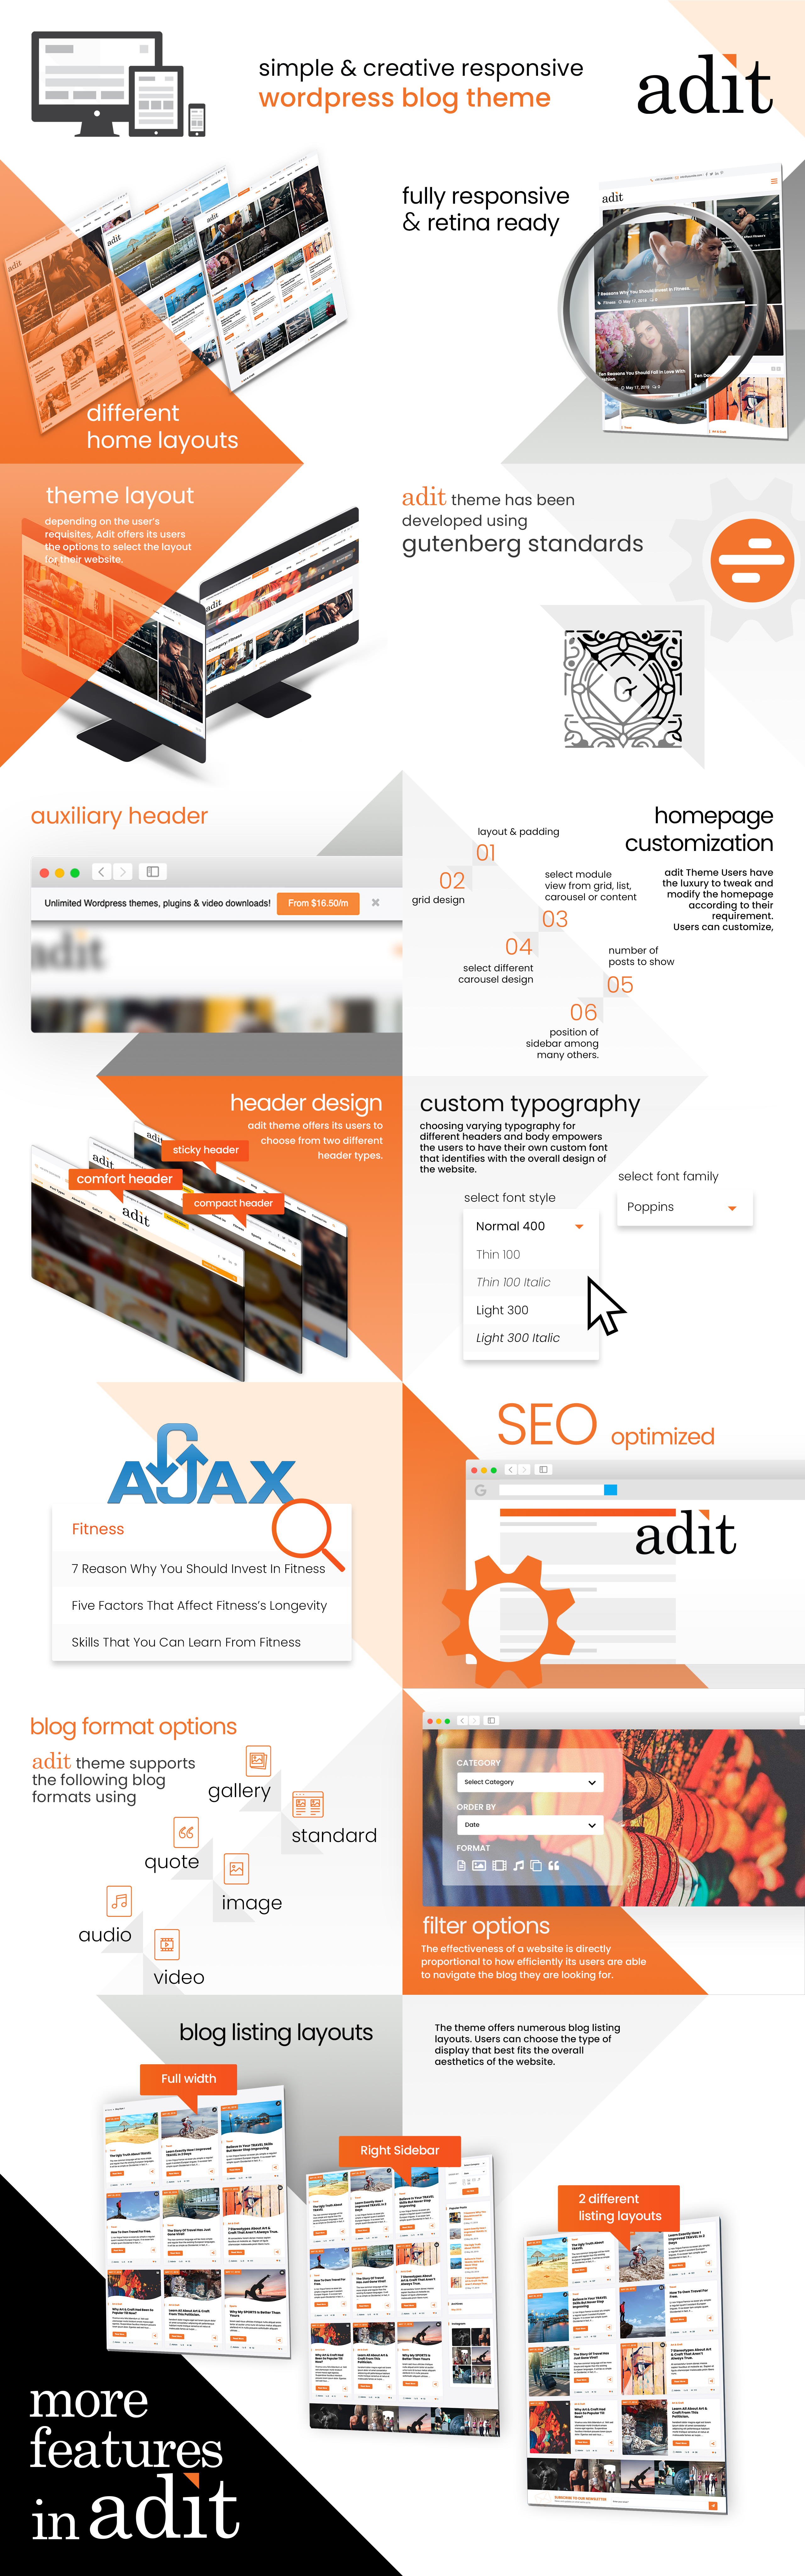 Adit WordPress Theme